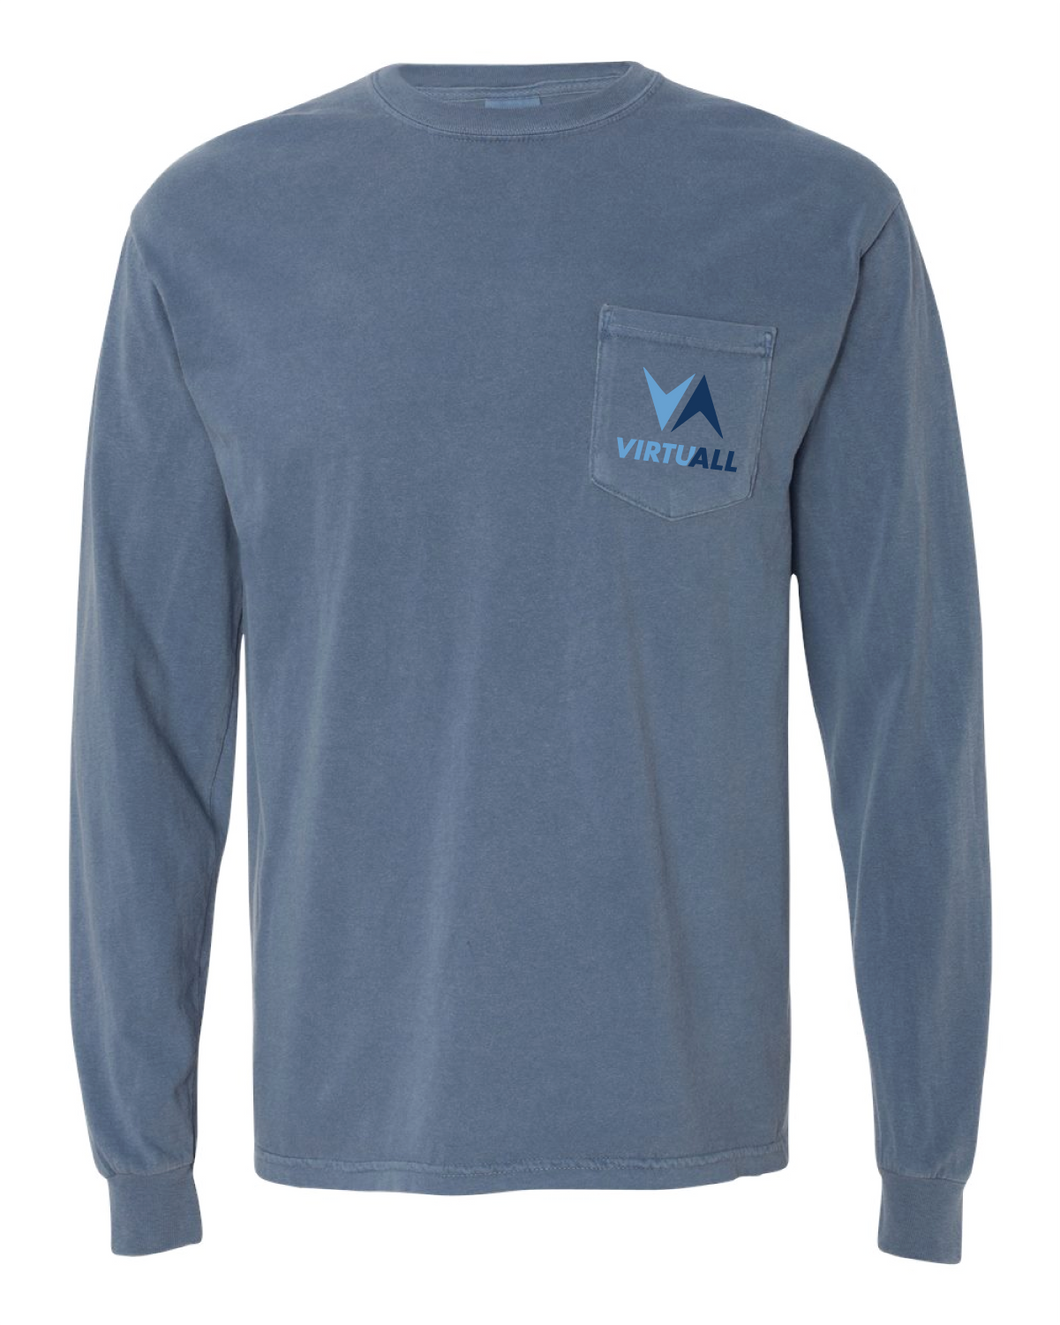 VirtuALL Long Sleeve Pocket T-Shirt - Blue